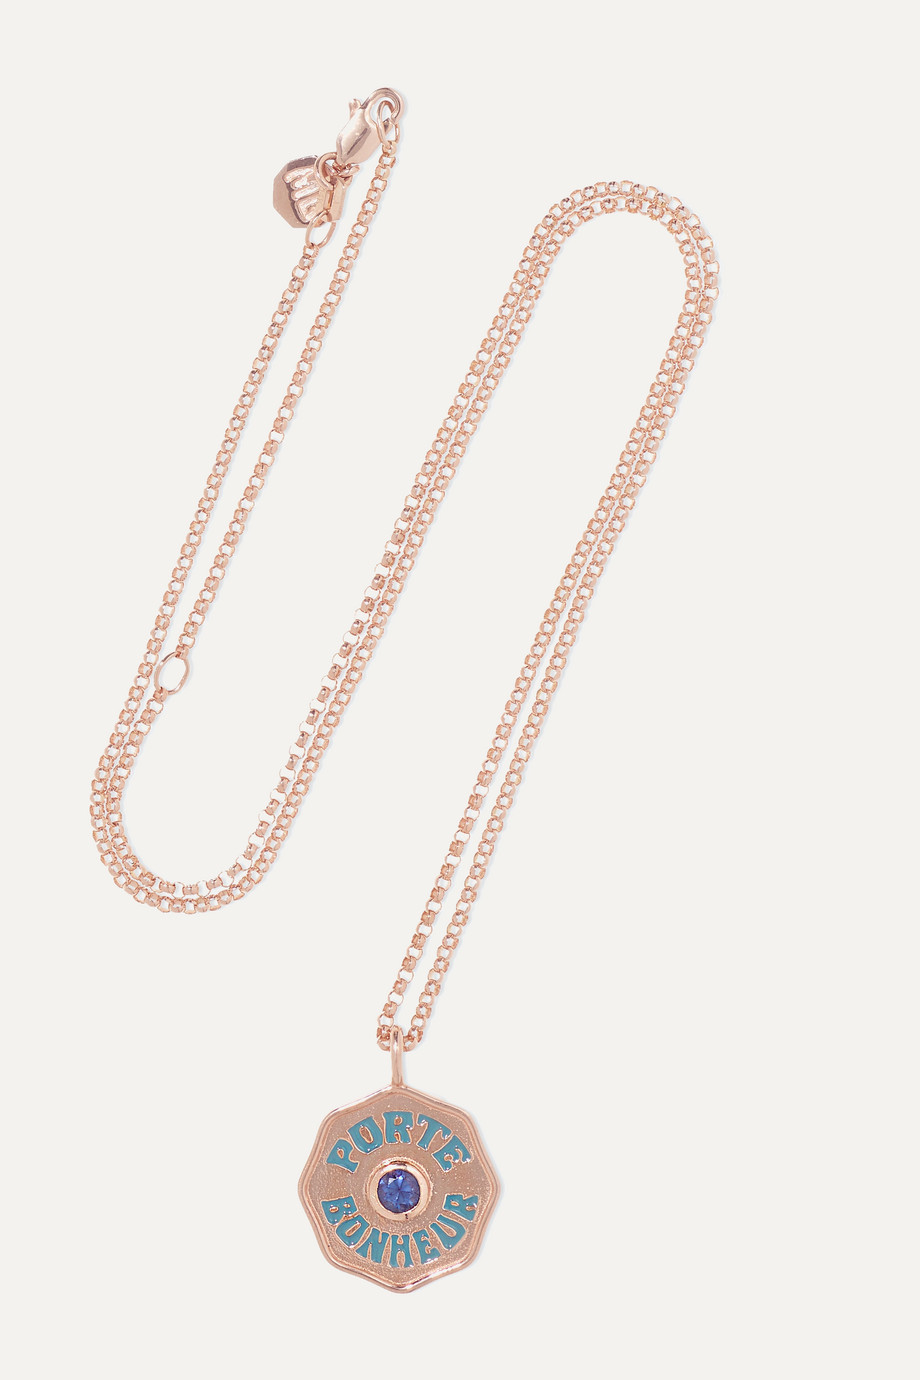 Marlo Laz Mini Coin 14-karat rose gold, enamel and sapphire necklace